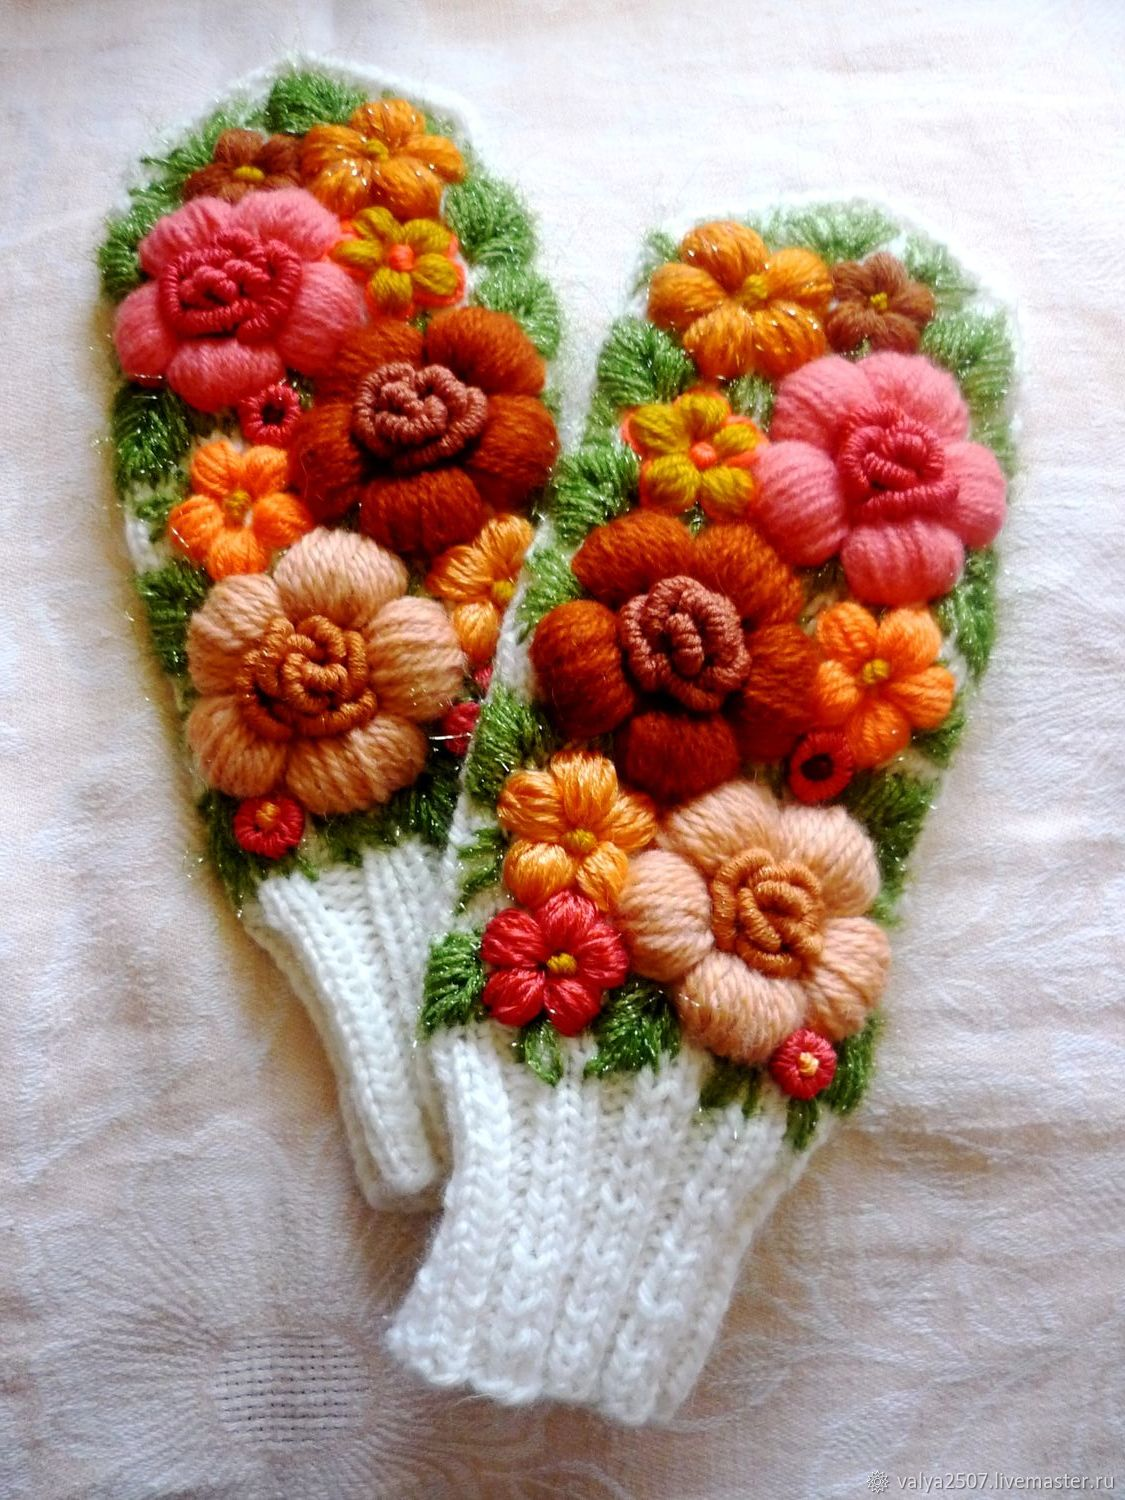 Mittens with embroidery